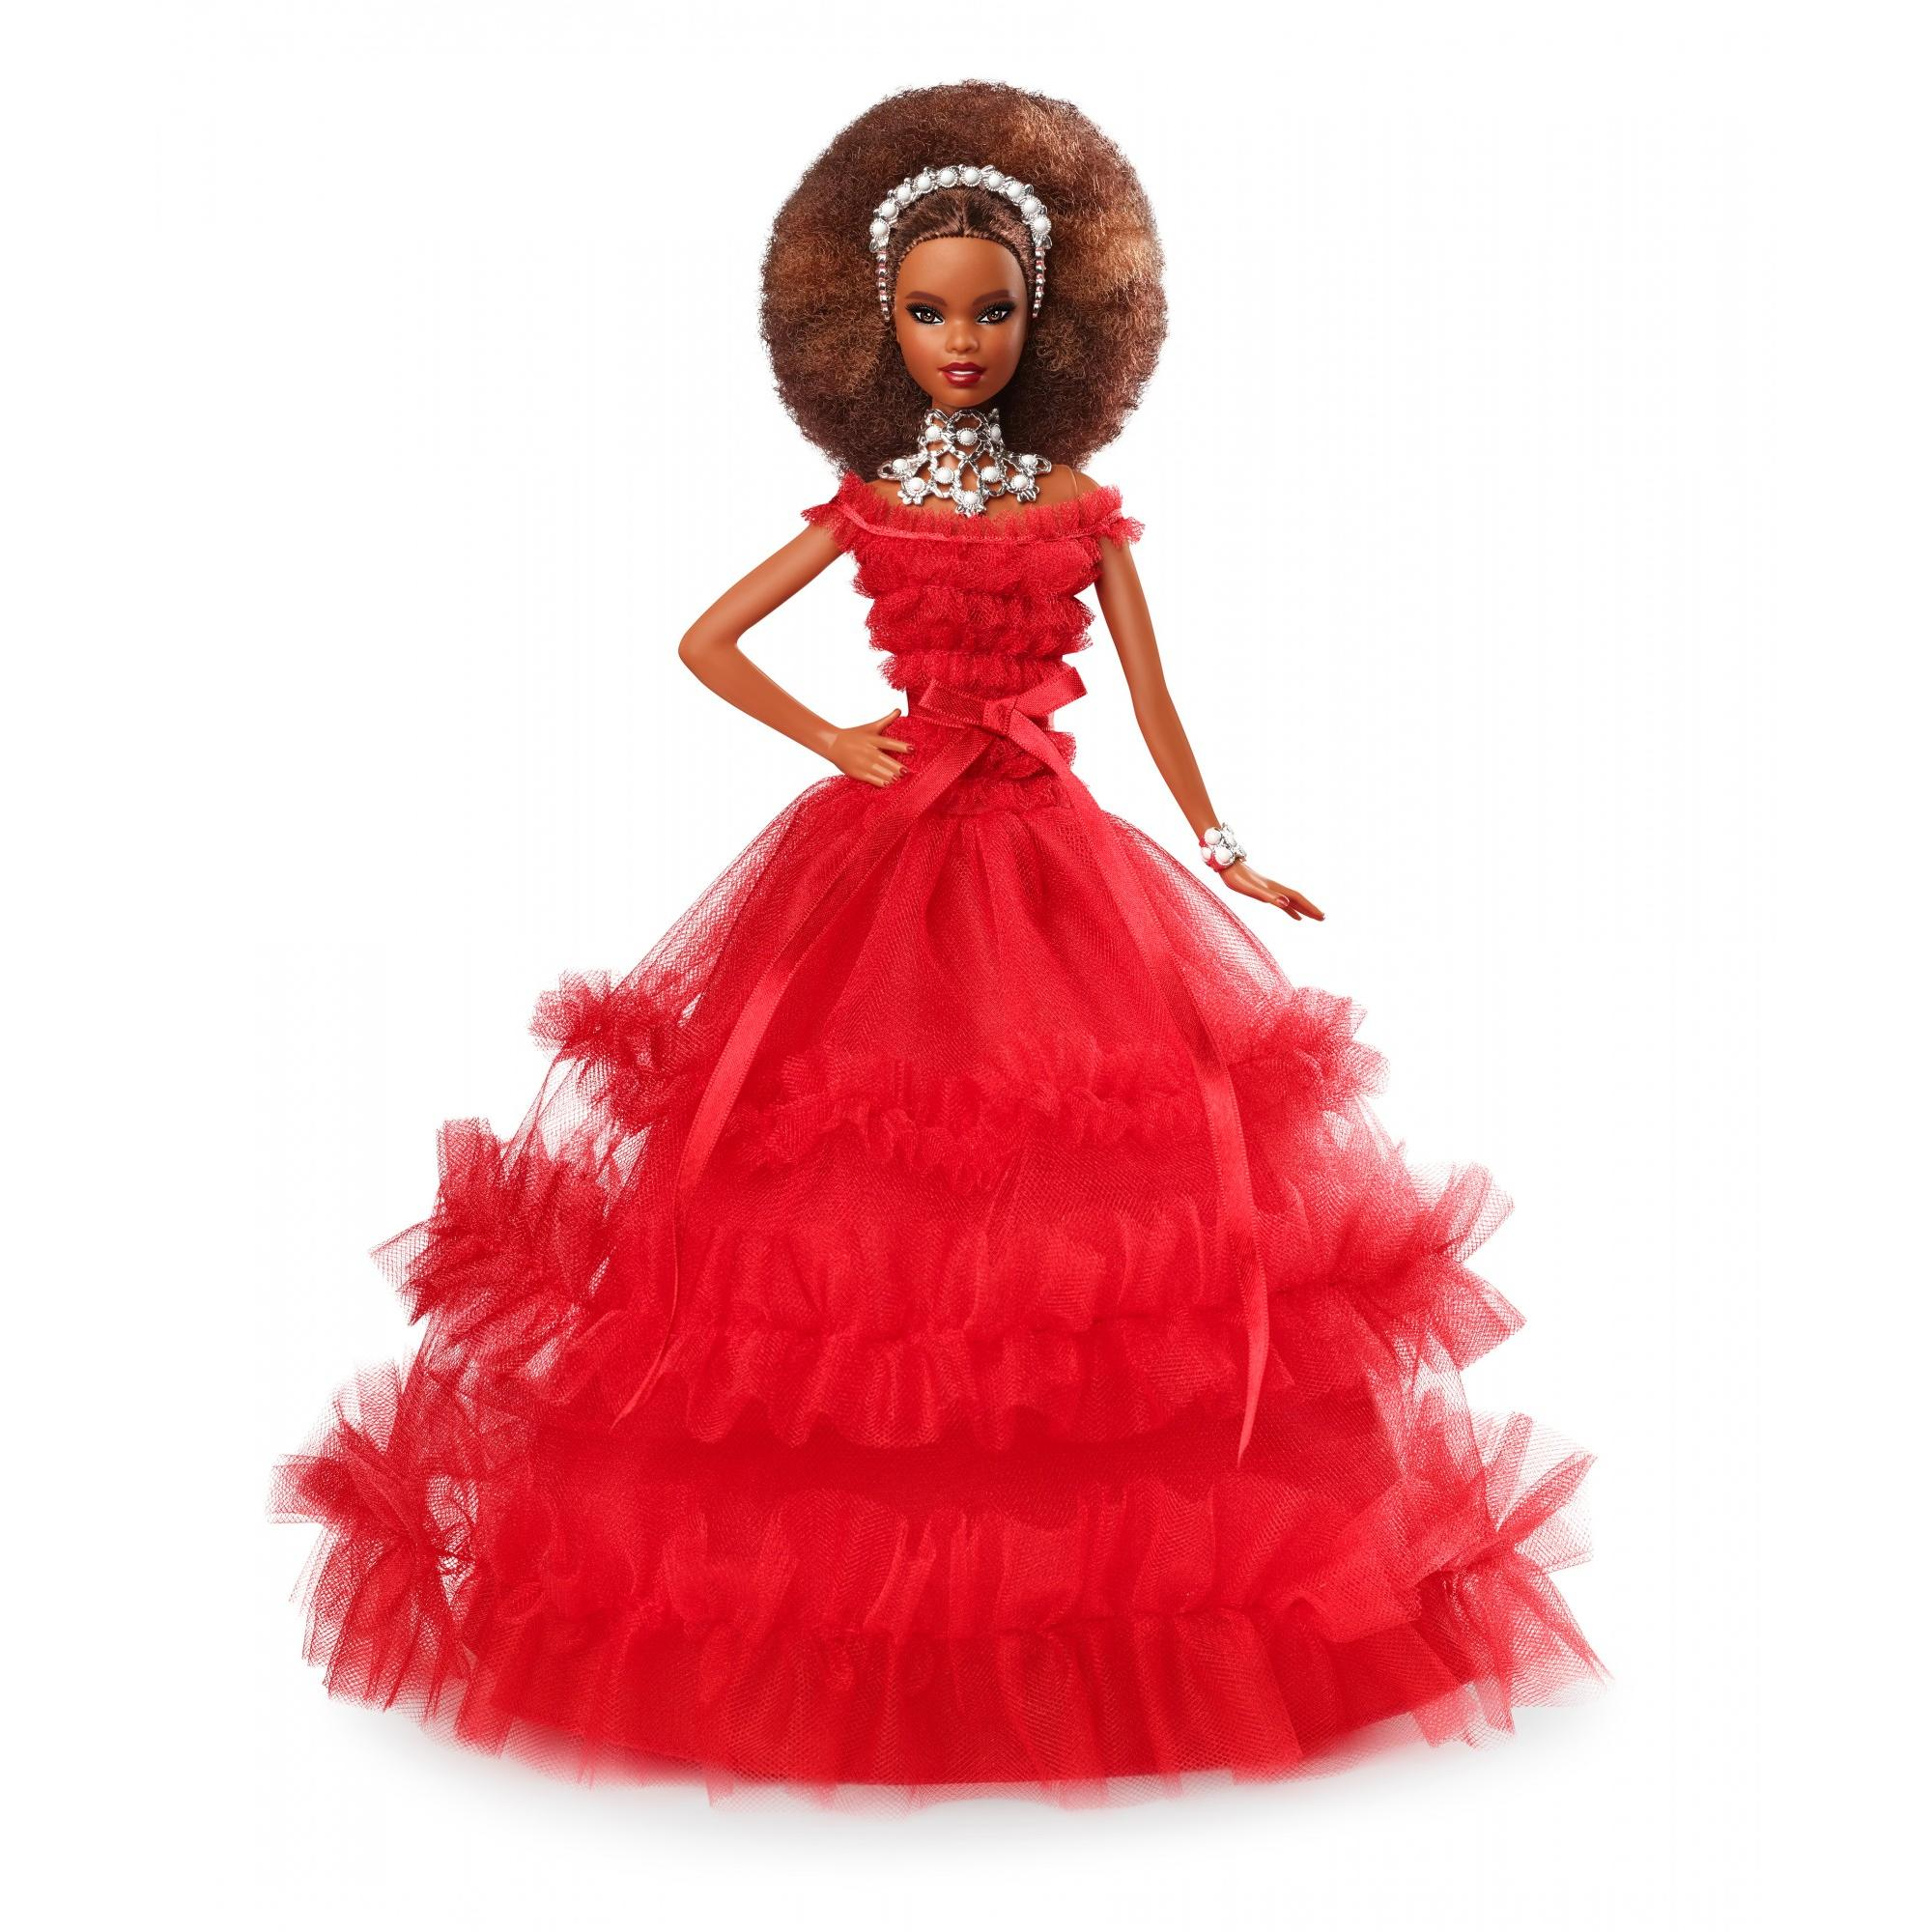 2018 Holiday Collector Barbie Signature Nikki Doll with Stand